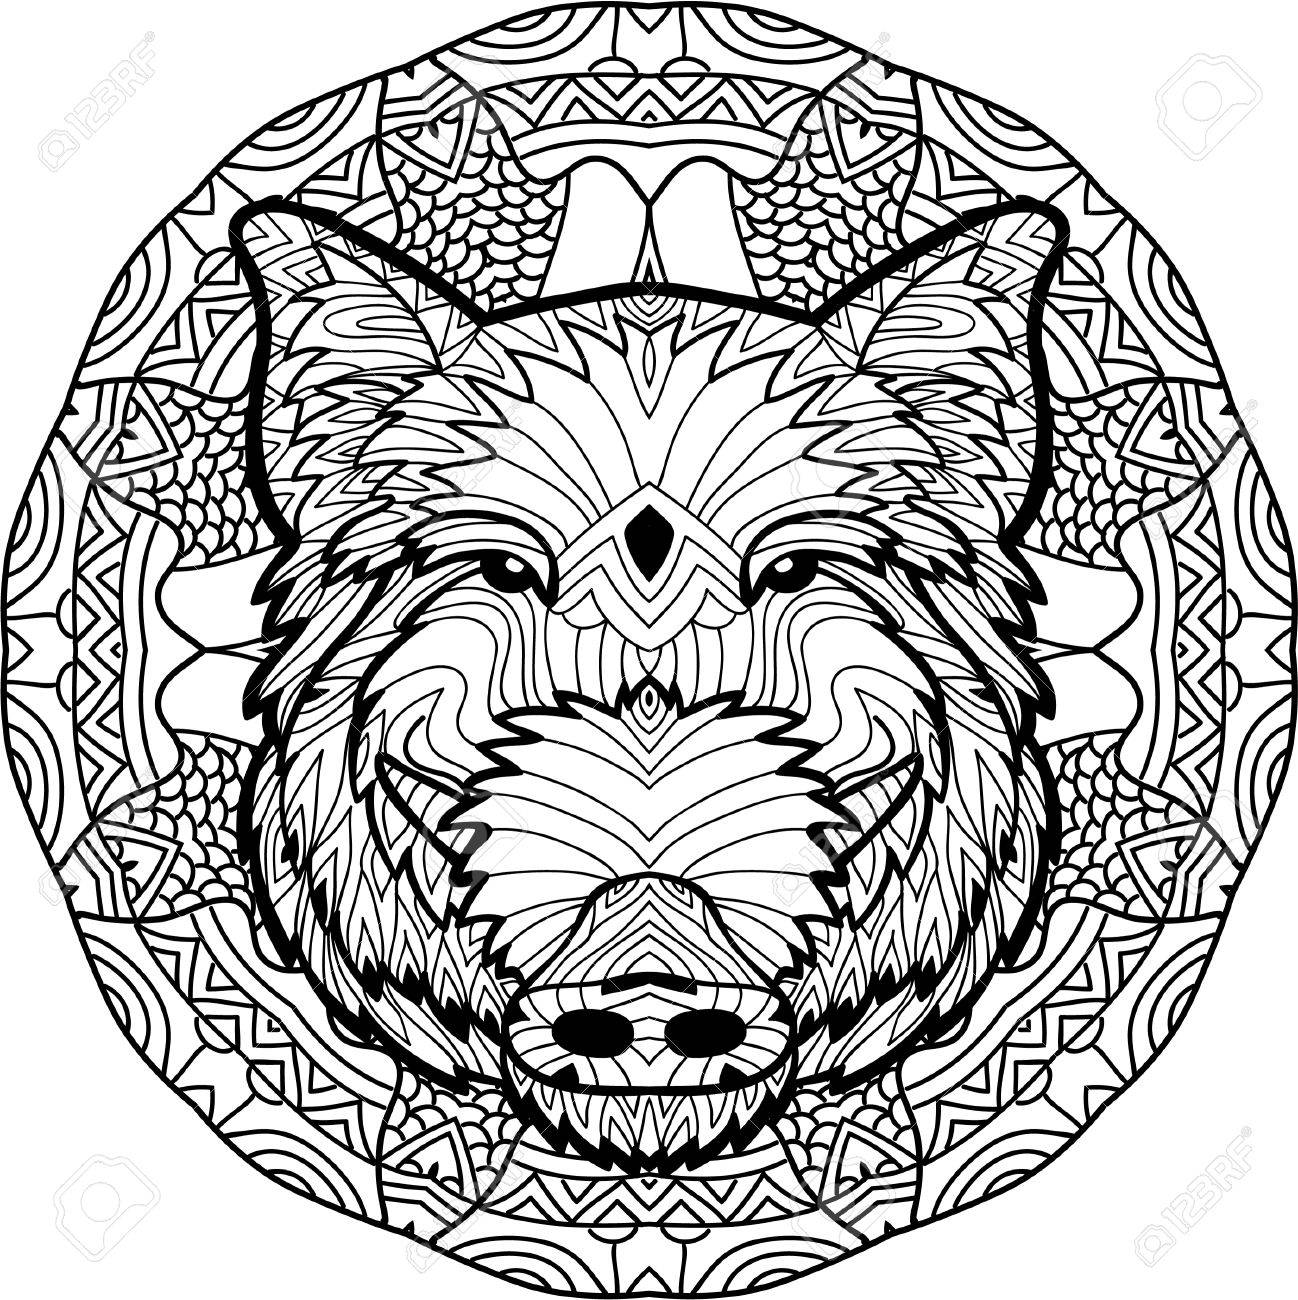 Monochrome Drawing With National Patterns Painted The Boar On